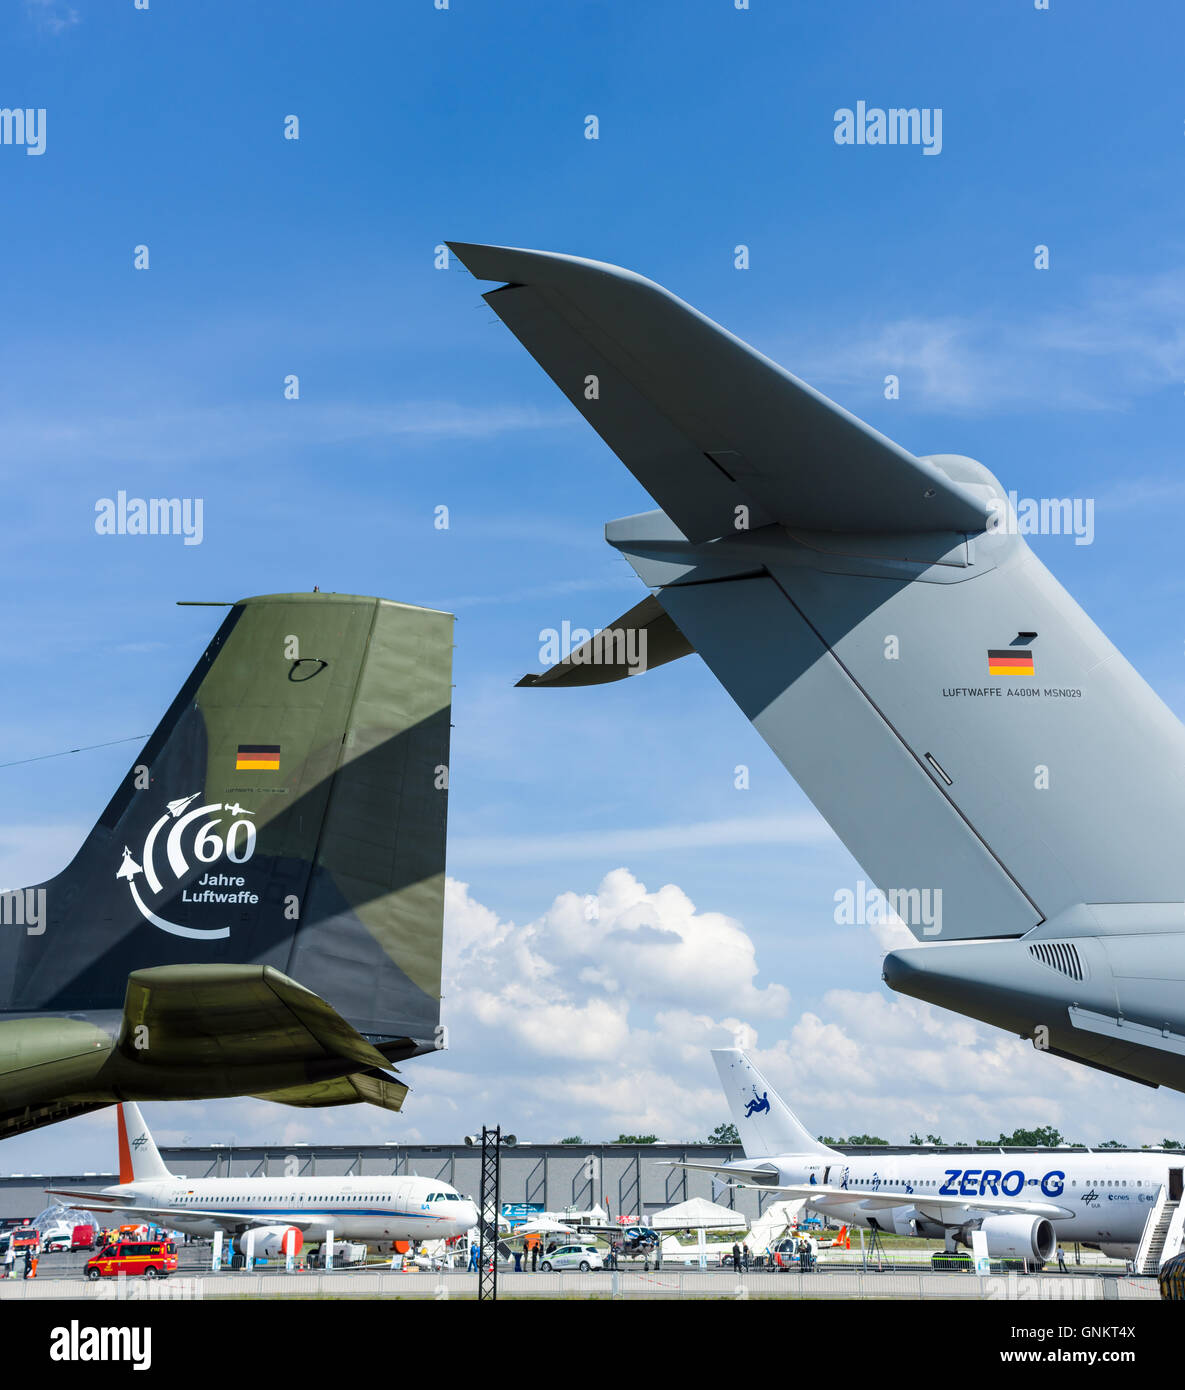 BERLIN, GERMANY - JUNE 03, 2016: Civil and military aircraft on the airfield. Exhibition ILA Berlin Air Show 2016 - Stock Image